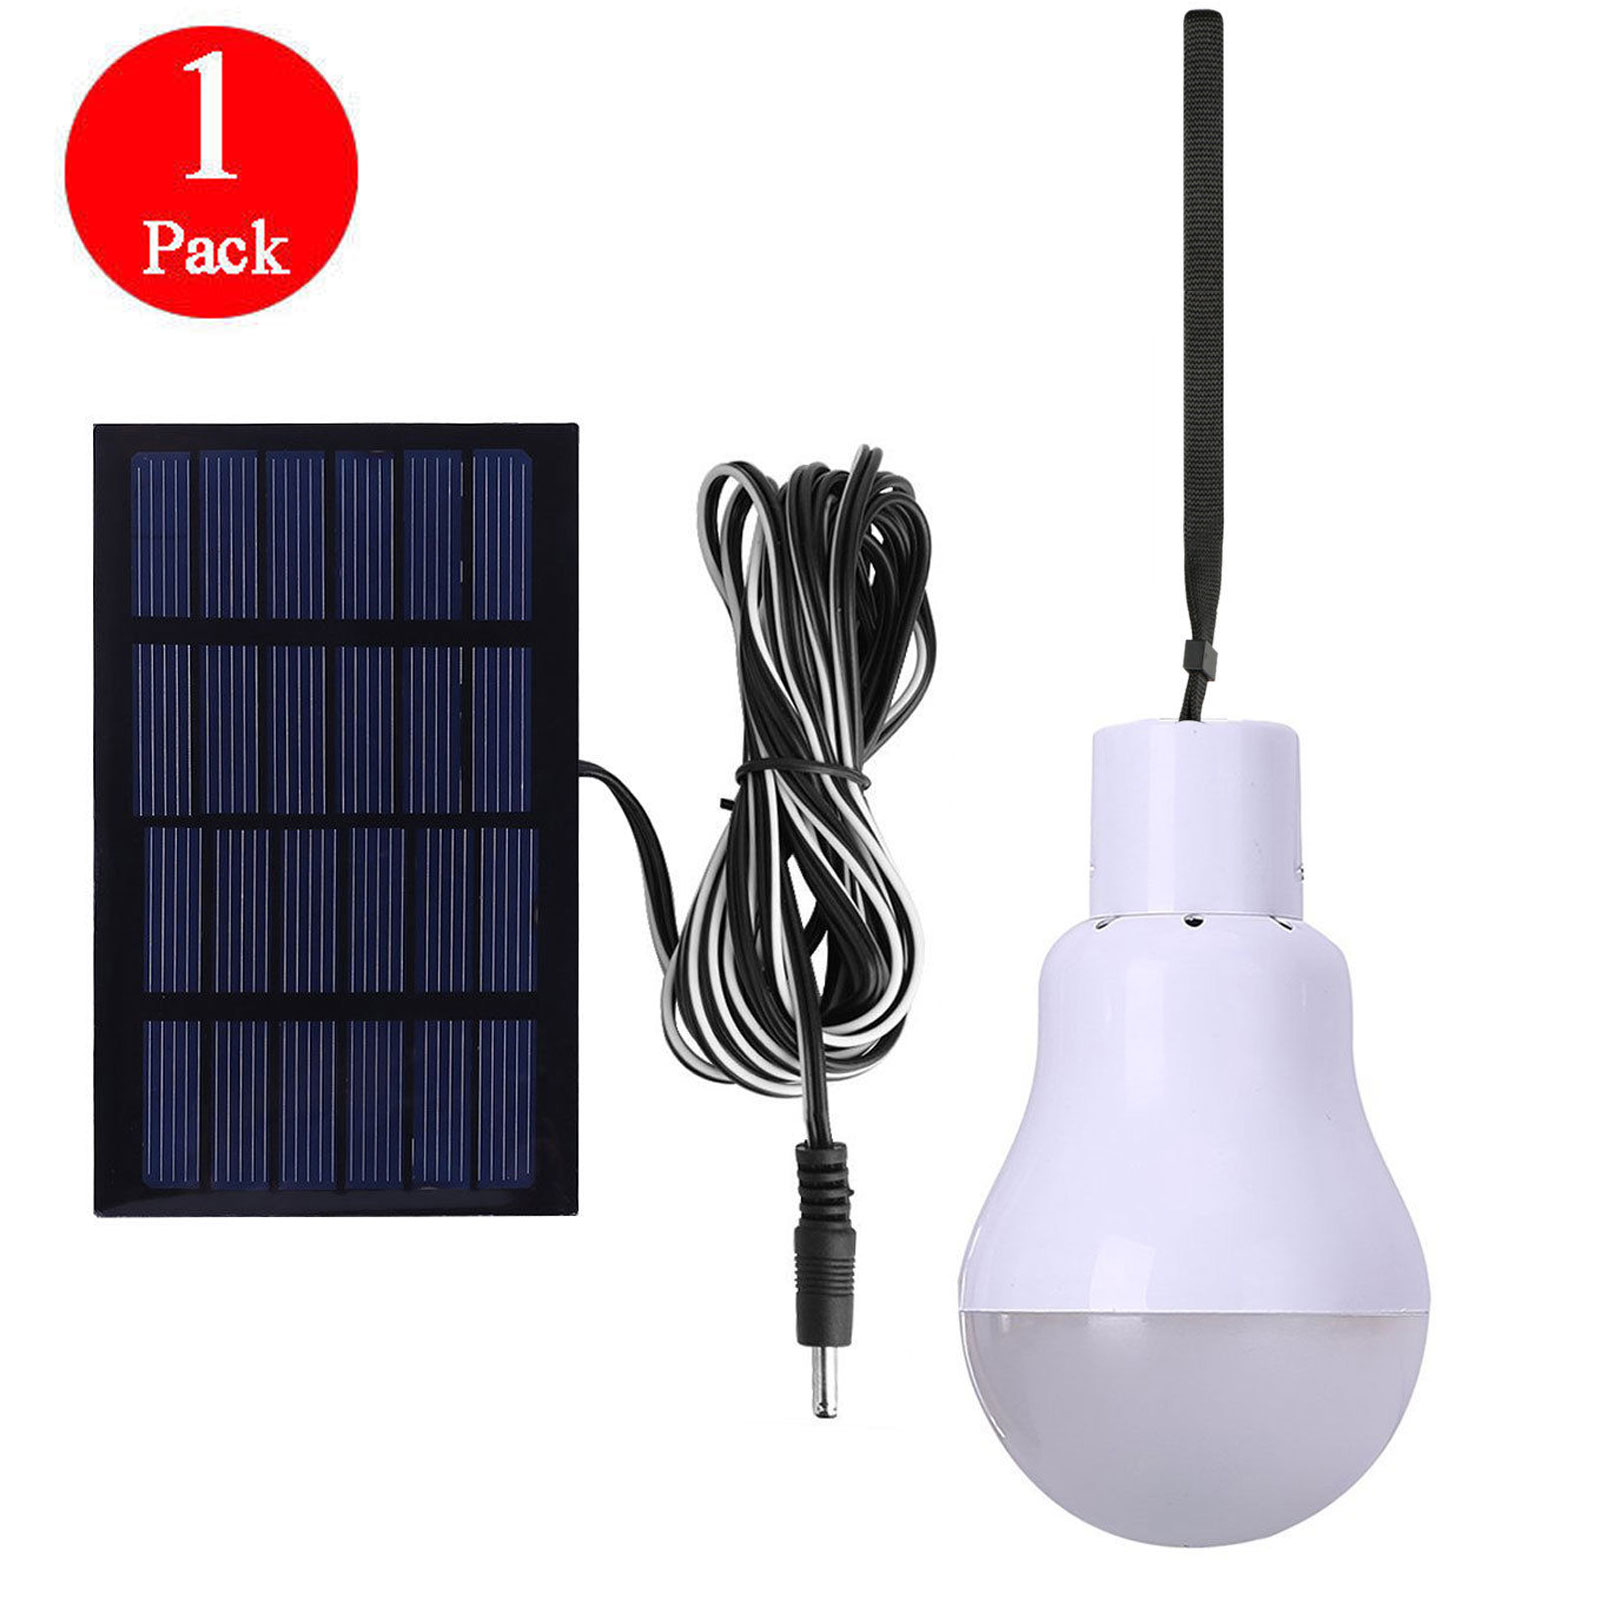 Led Verlichting Met Los Paneel Eeekit Portable Solar Powered Led Bulb Lights Solar Energy Panel Led Lamp Lighting For Hiking Fishing Camping Tent Emergency Use